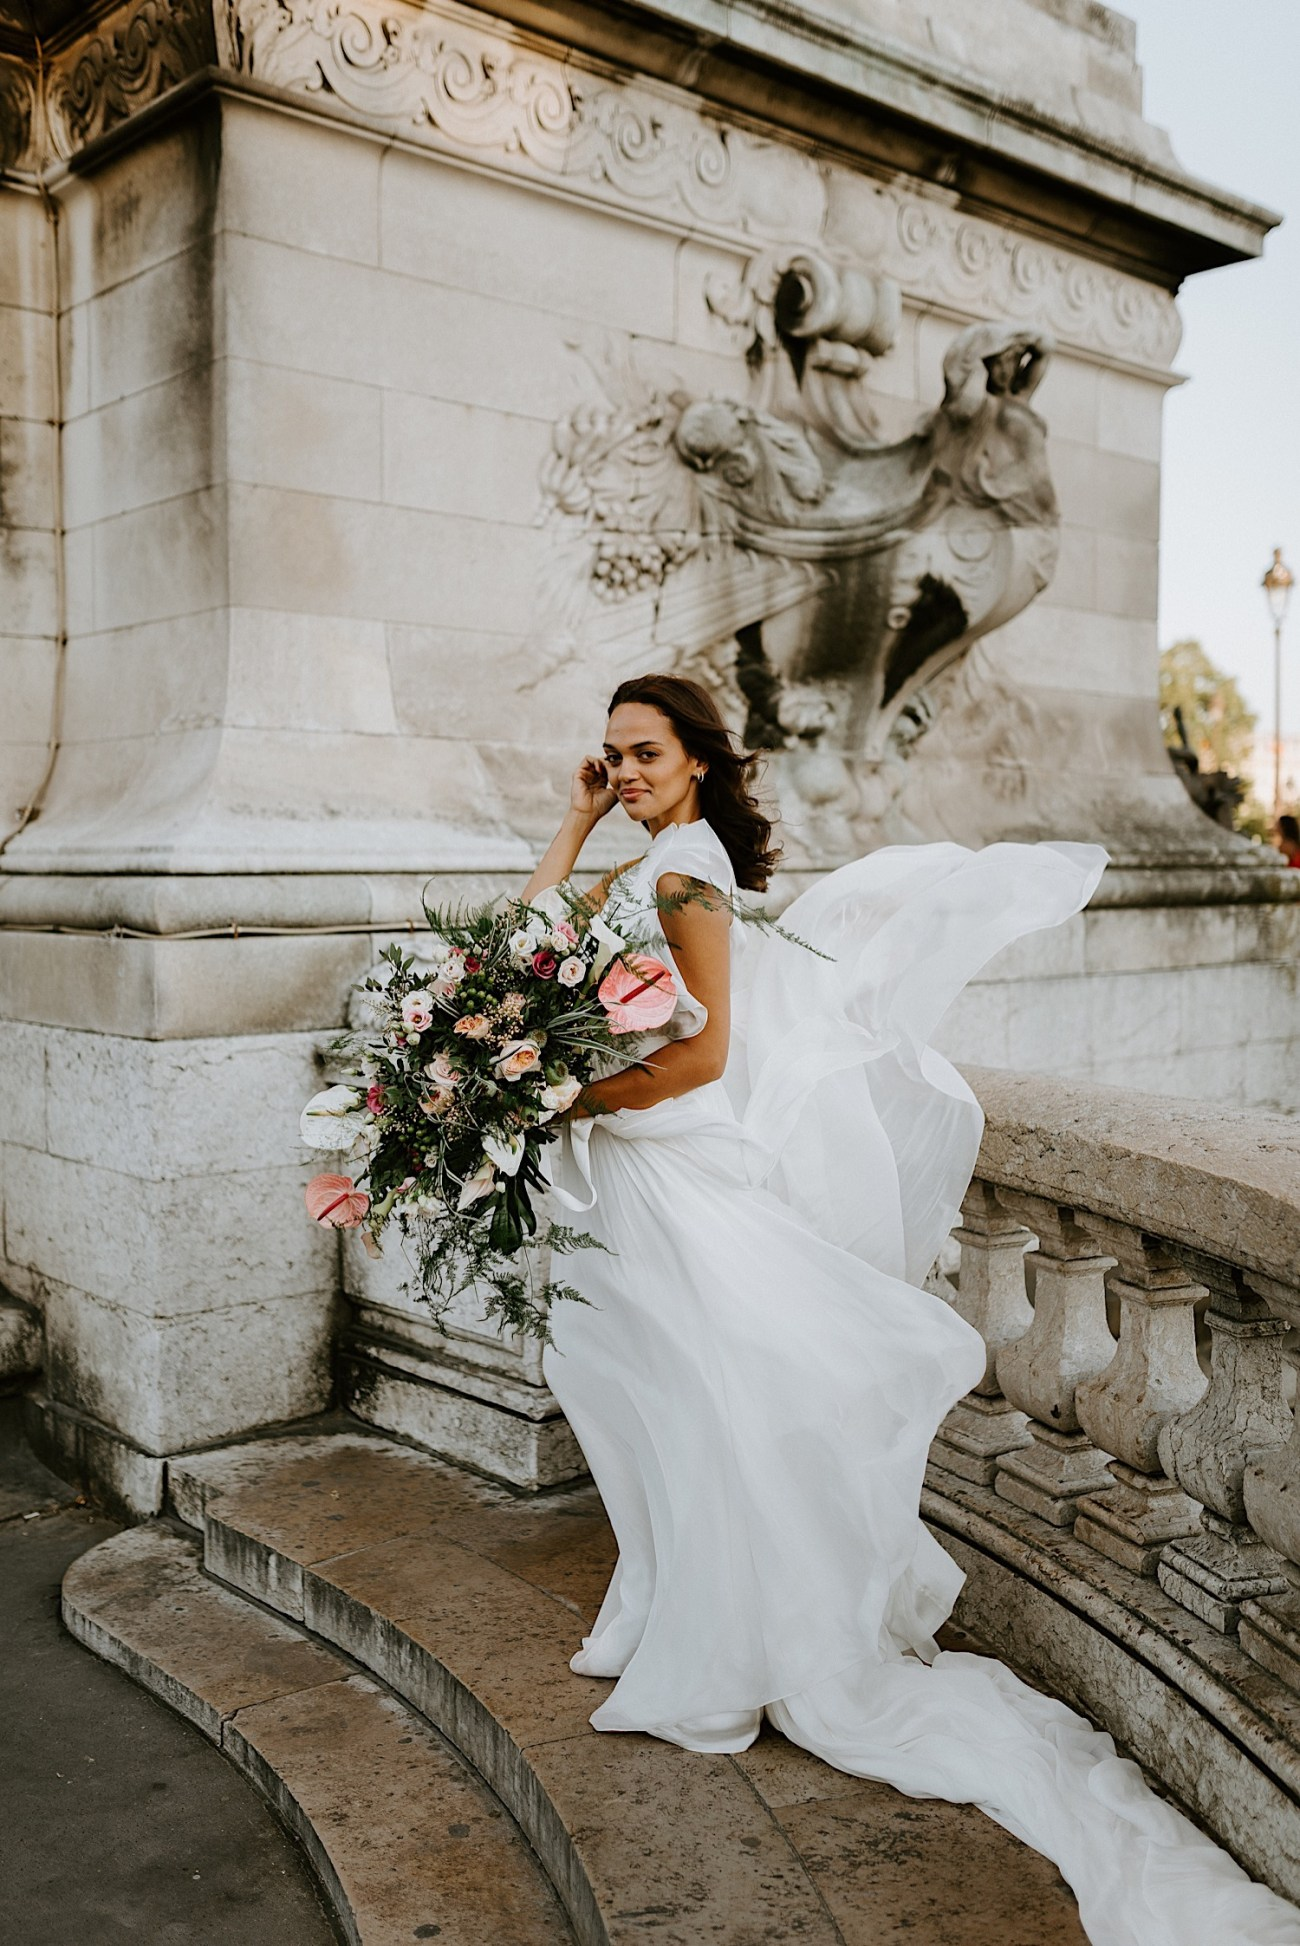 Paris Wedding Photos Paris Wedding Photographer Paris Photographe De Marriage Pont Alexandre Wedding Photos Anais Possamai Photography 23